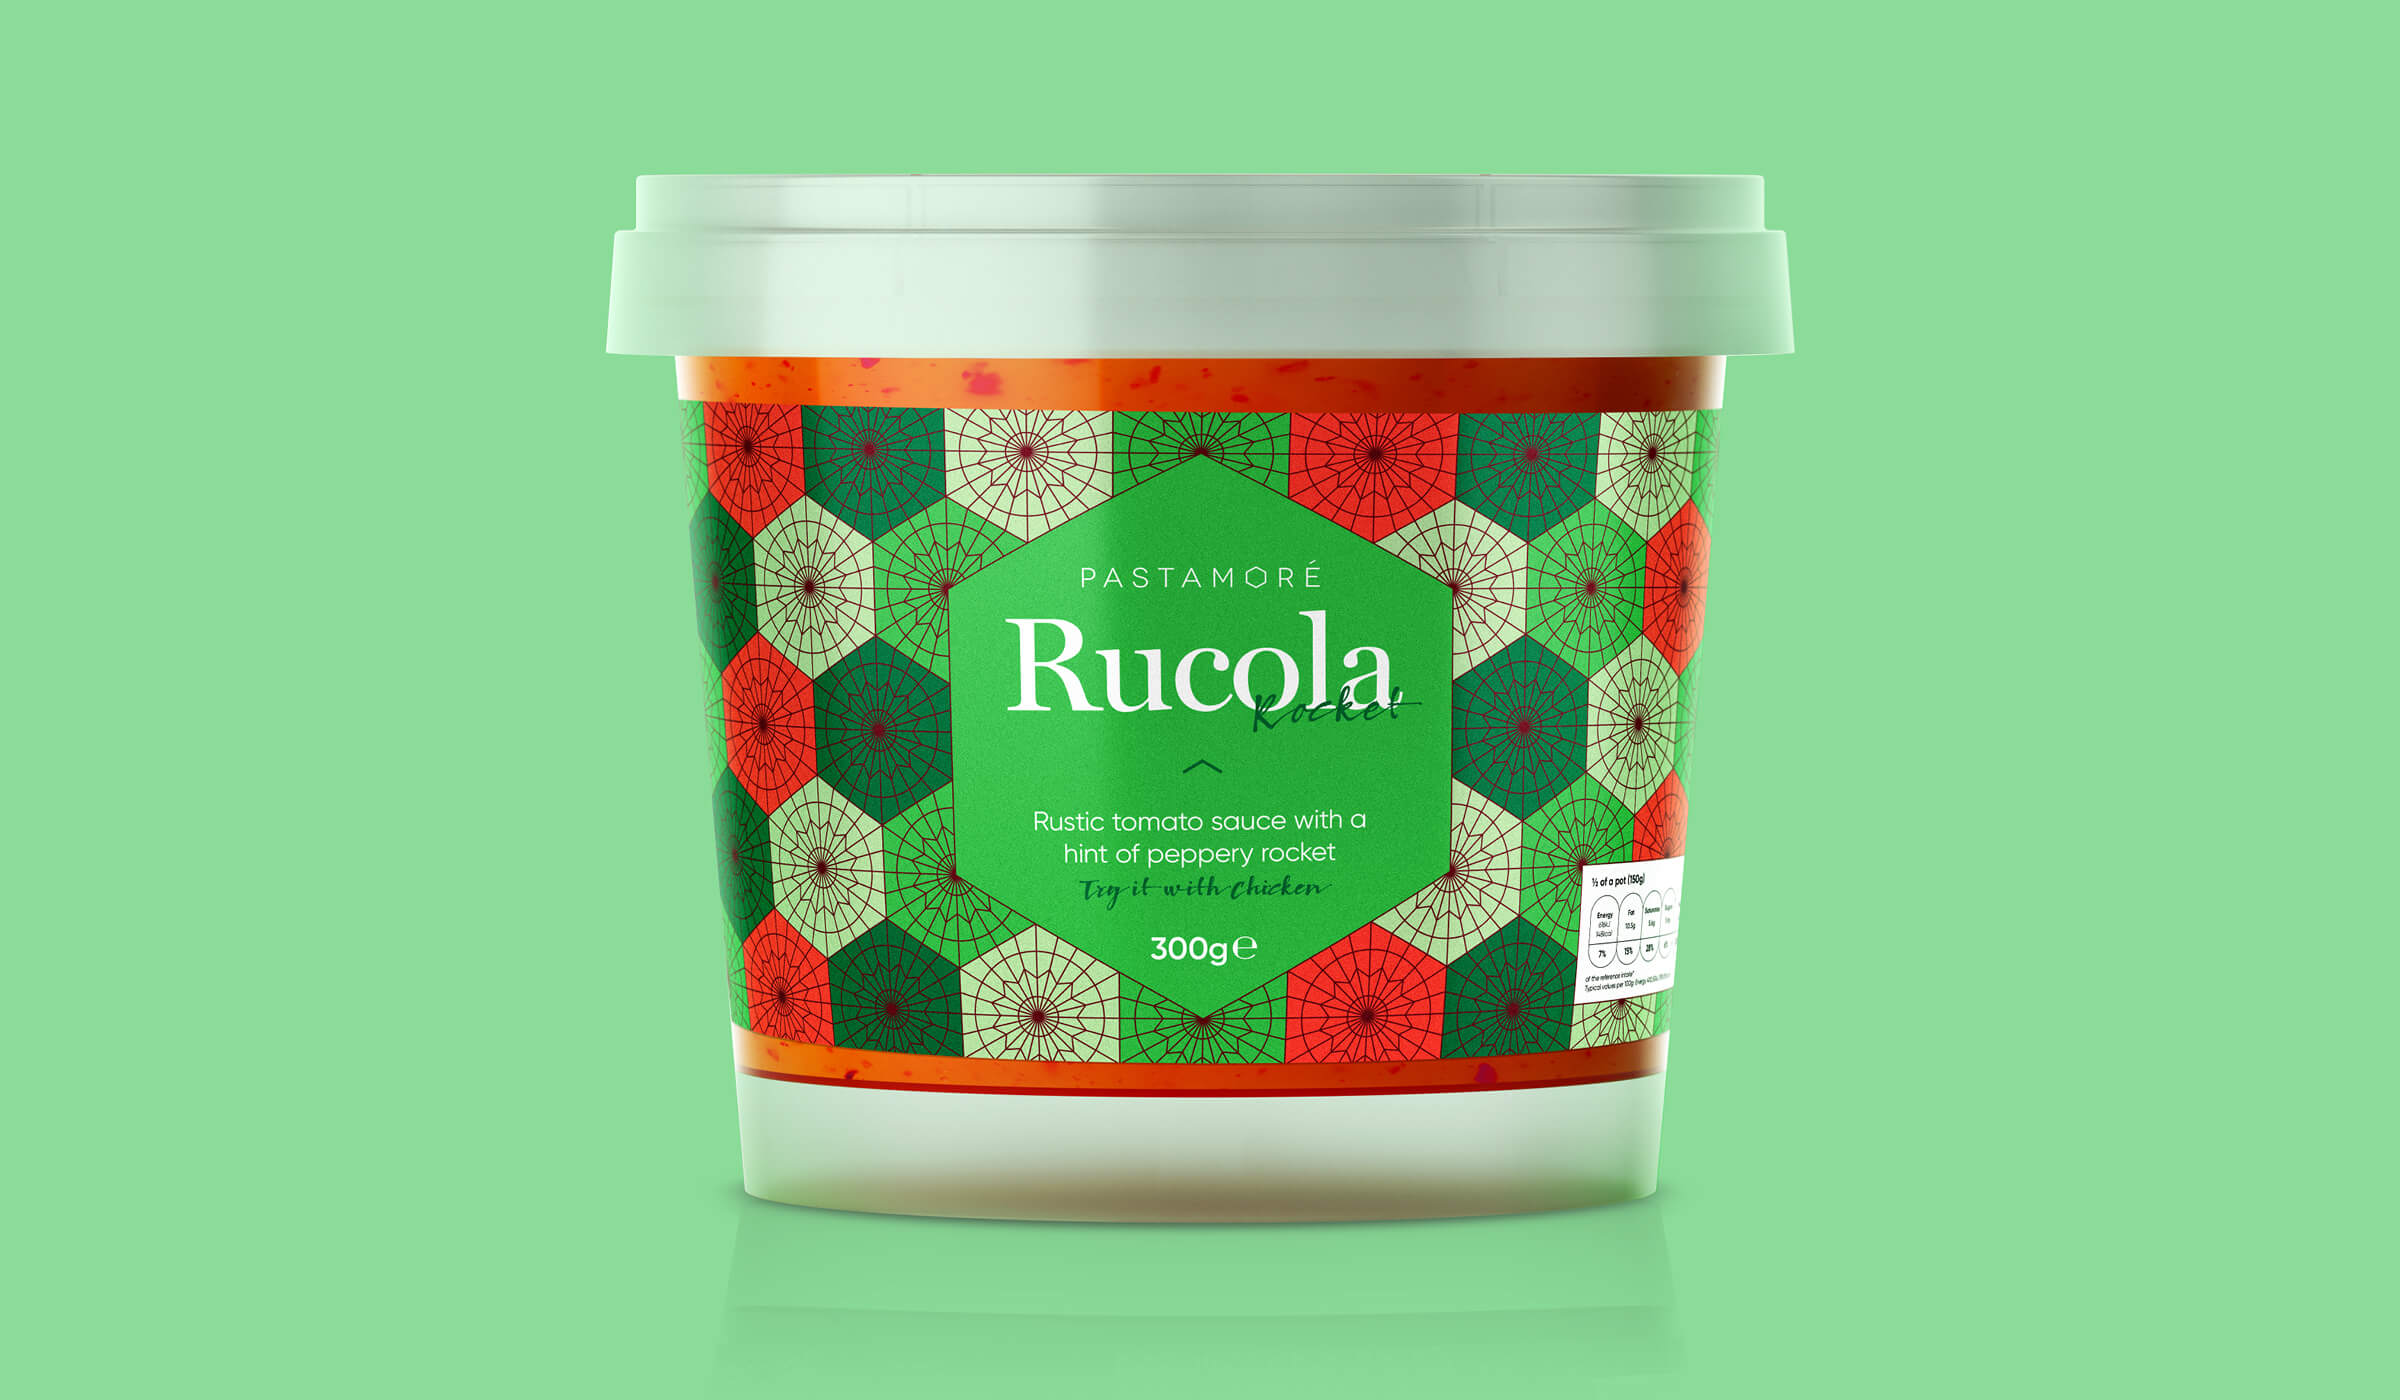 Pastamore Rucola packaging design